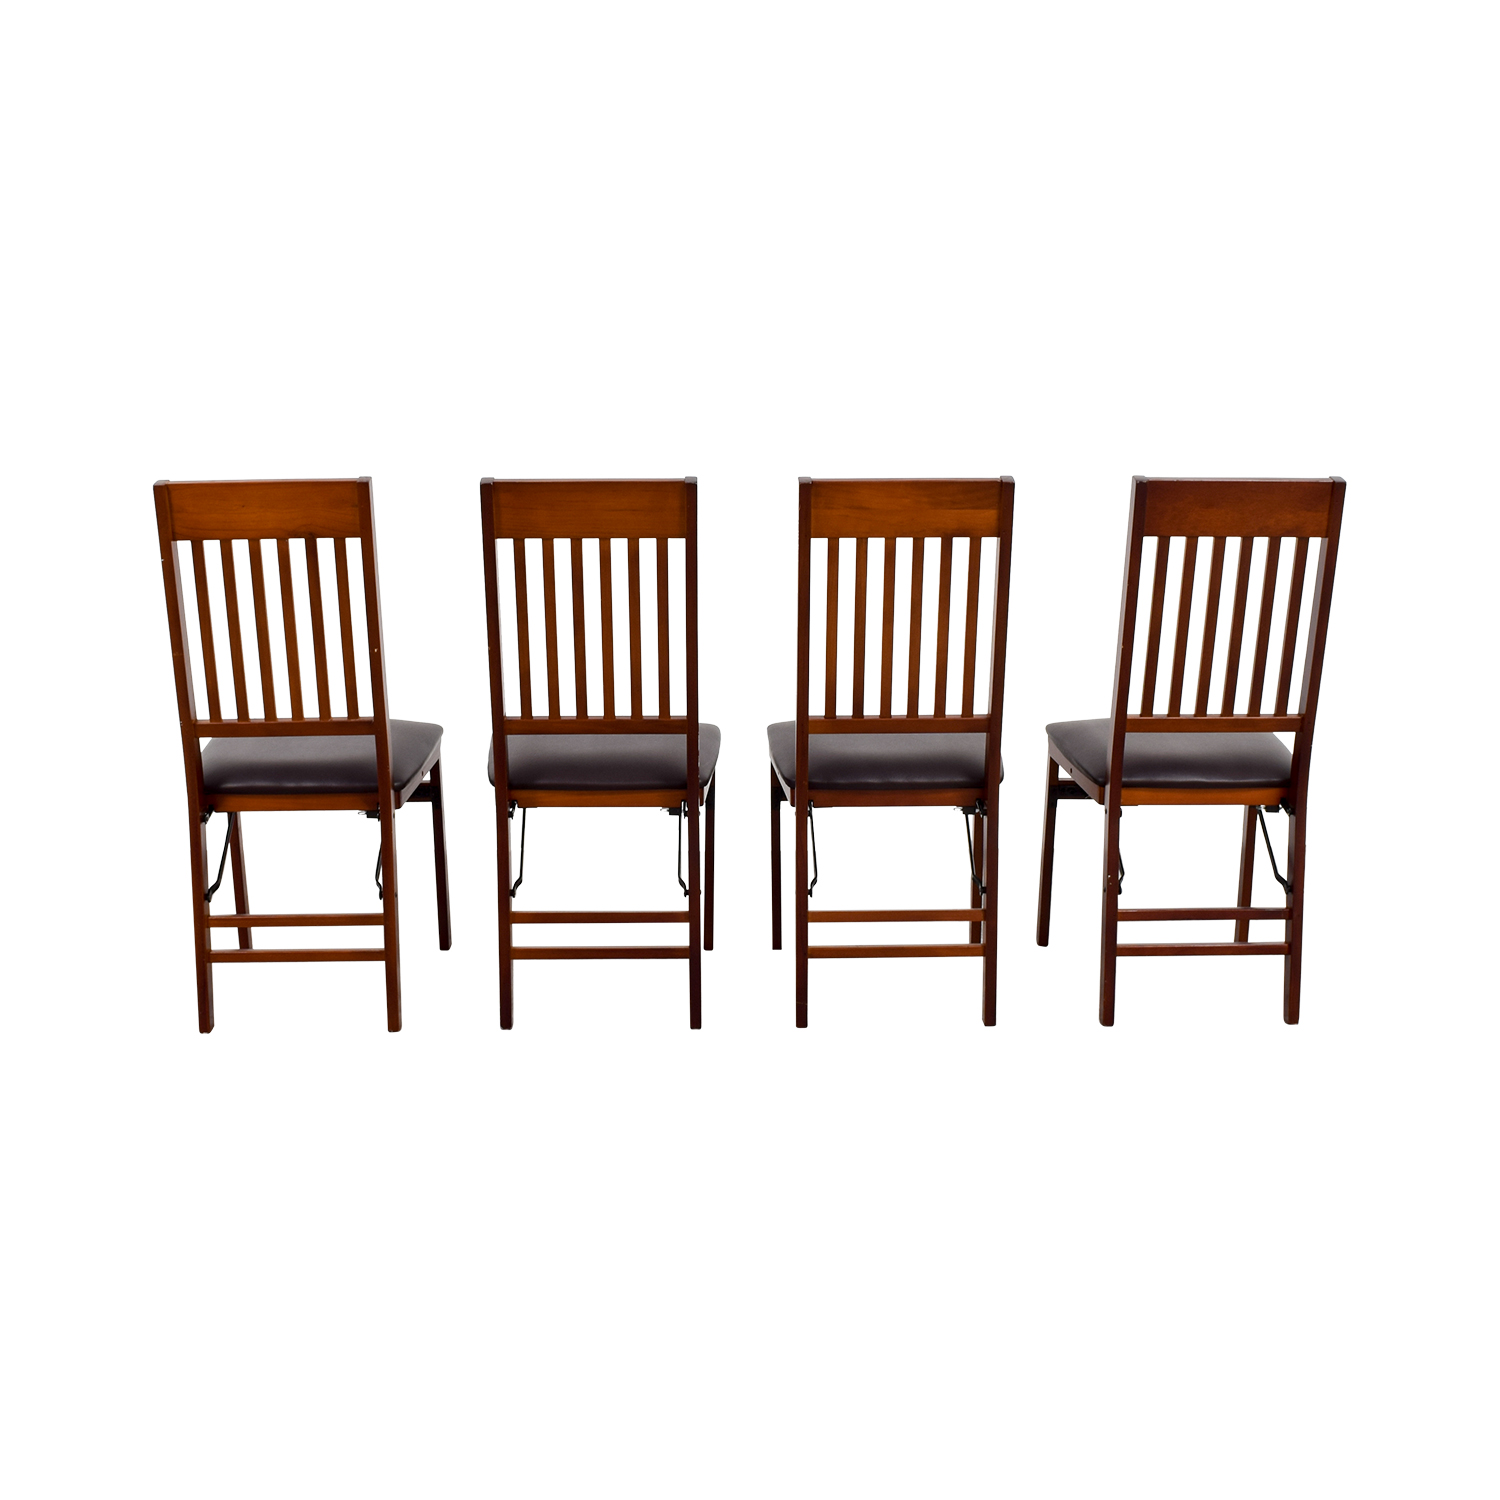 Bed Bath and Beyond Brown Folding Chairs / Chairs